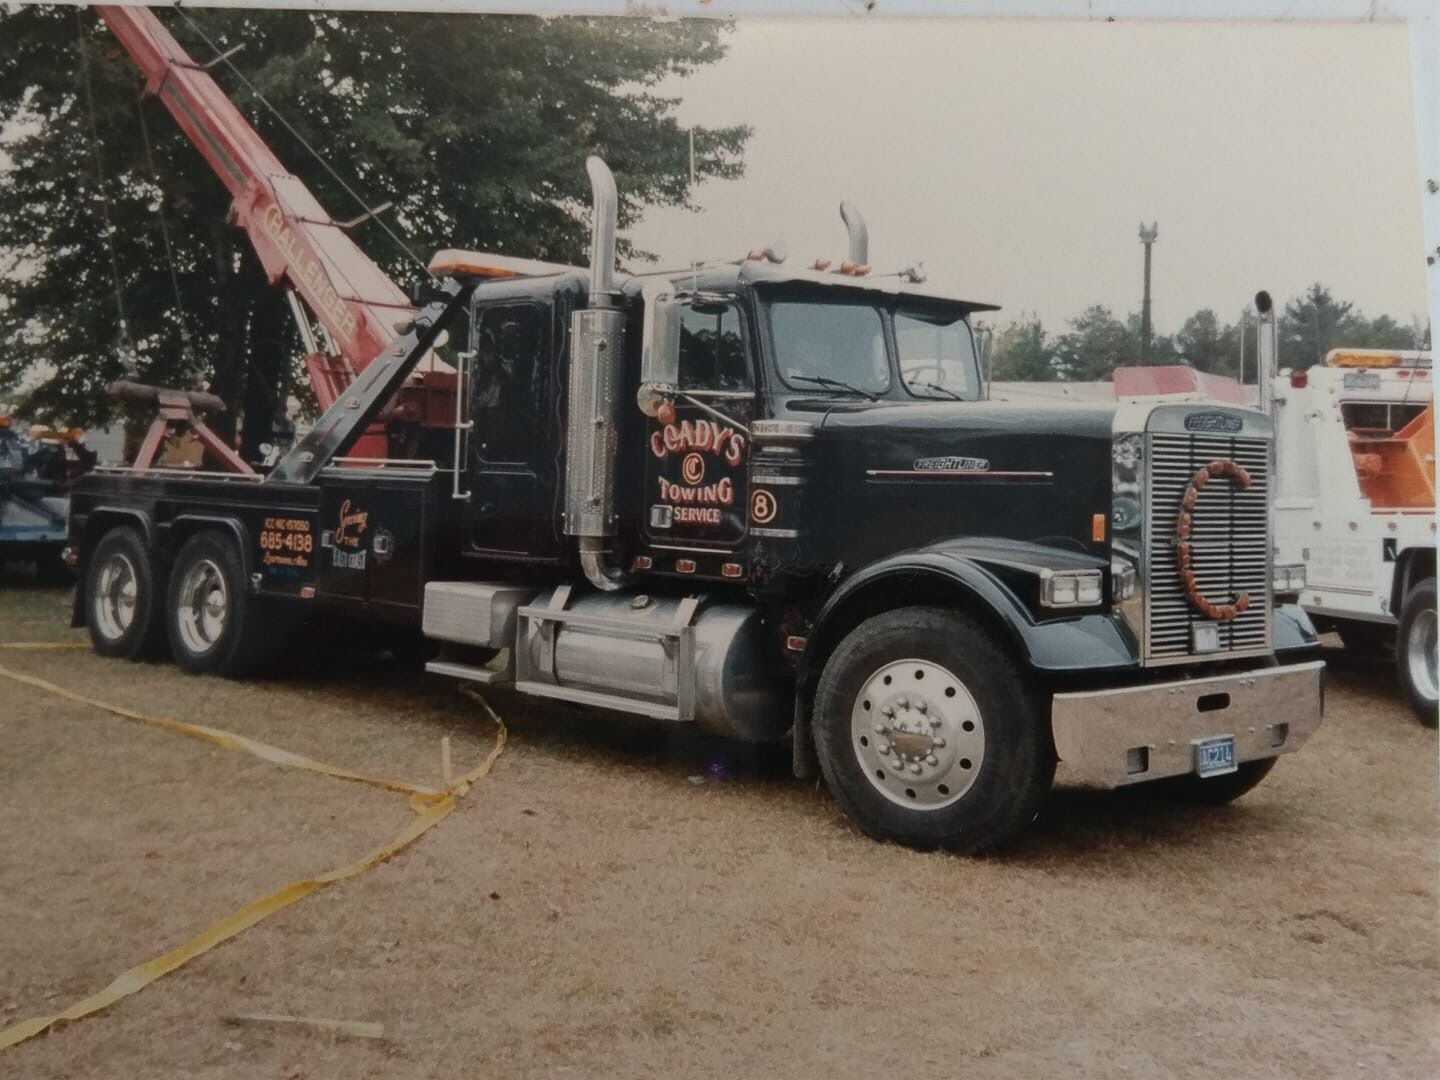 Coady's Garage & Towing Service, Lawrence Ma - Freightliner